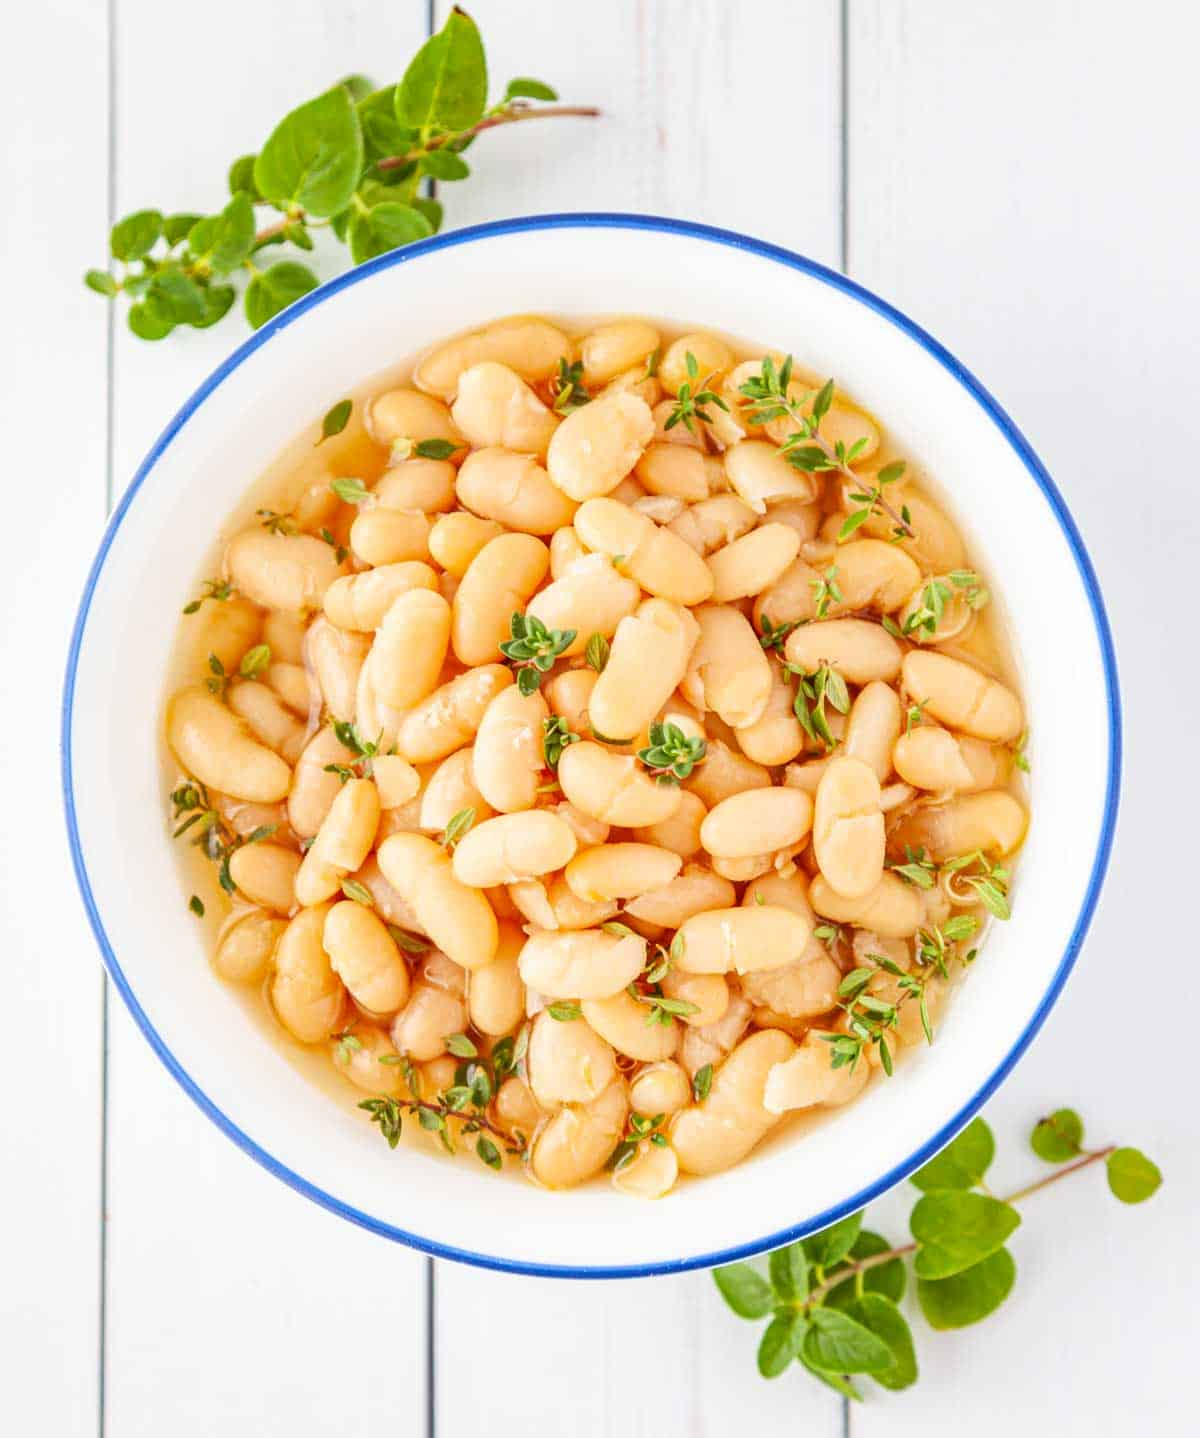 bowl of cooked Great Northern beans